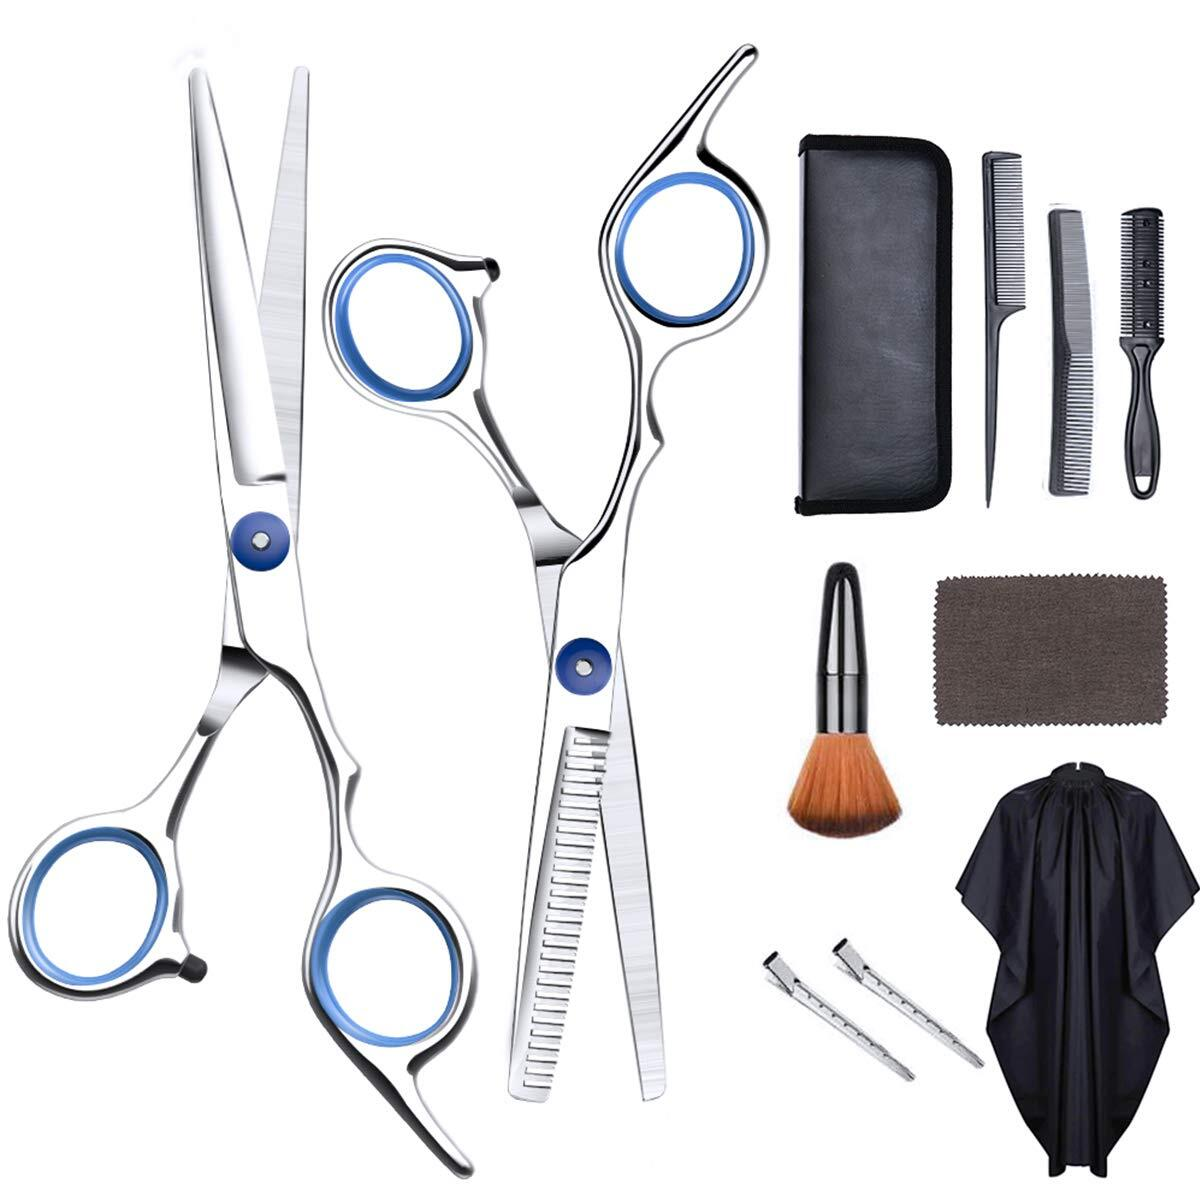 Hair Cutting Scissors - JOYSON Professional Hair Cutting Shears Set 11 PCS, 6.65